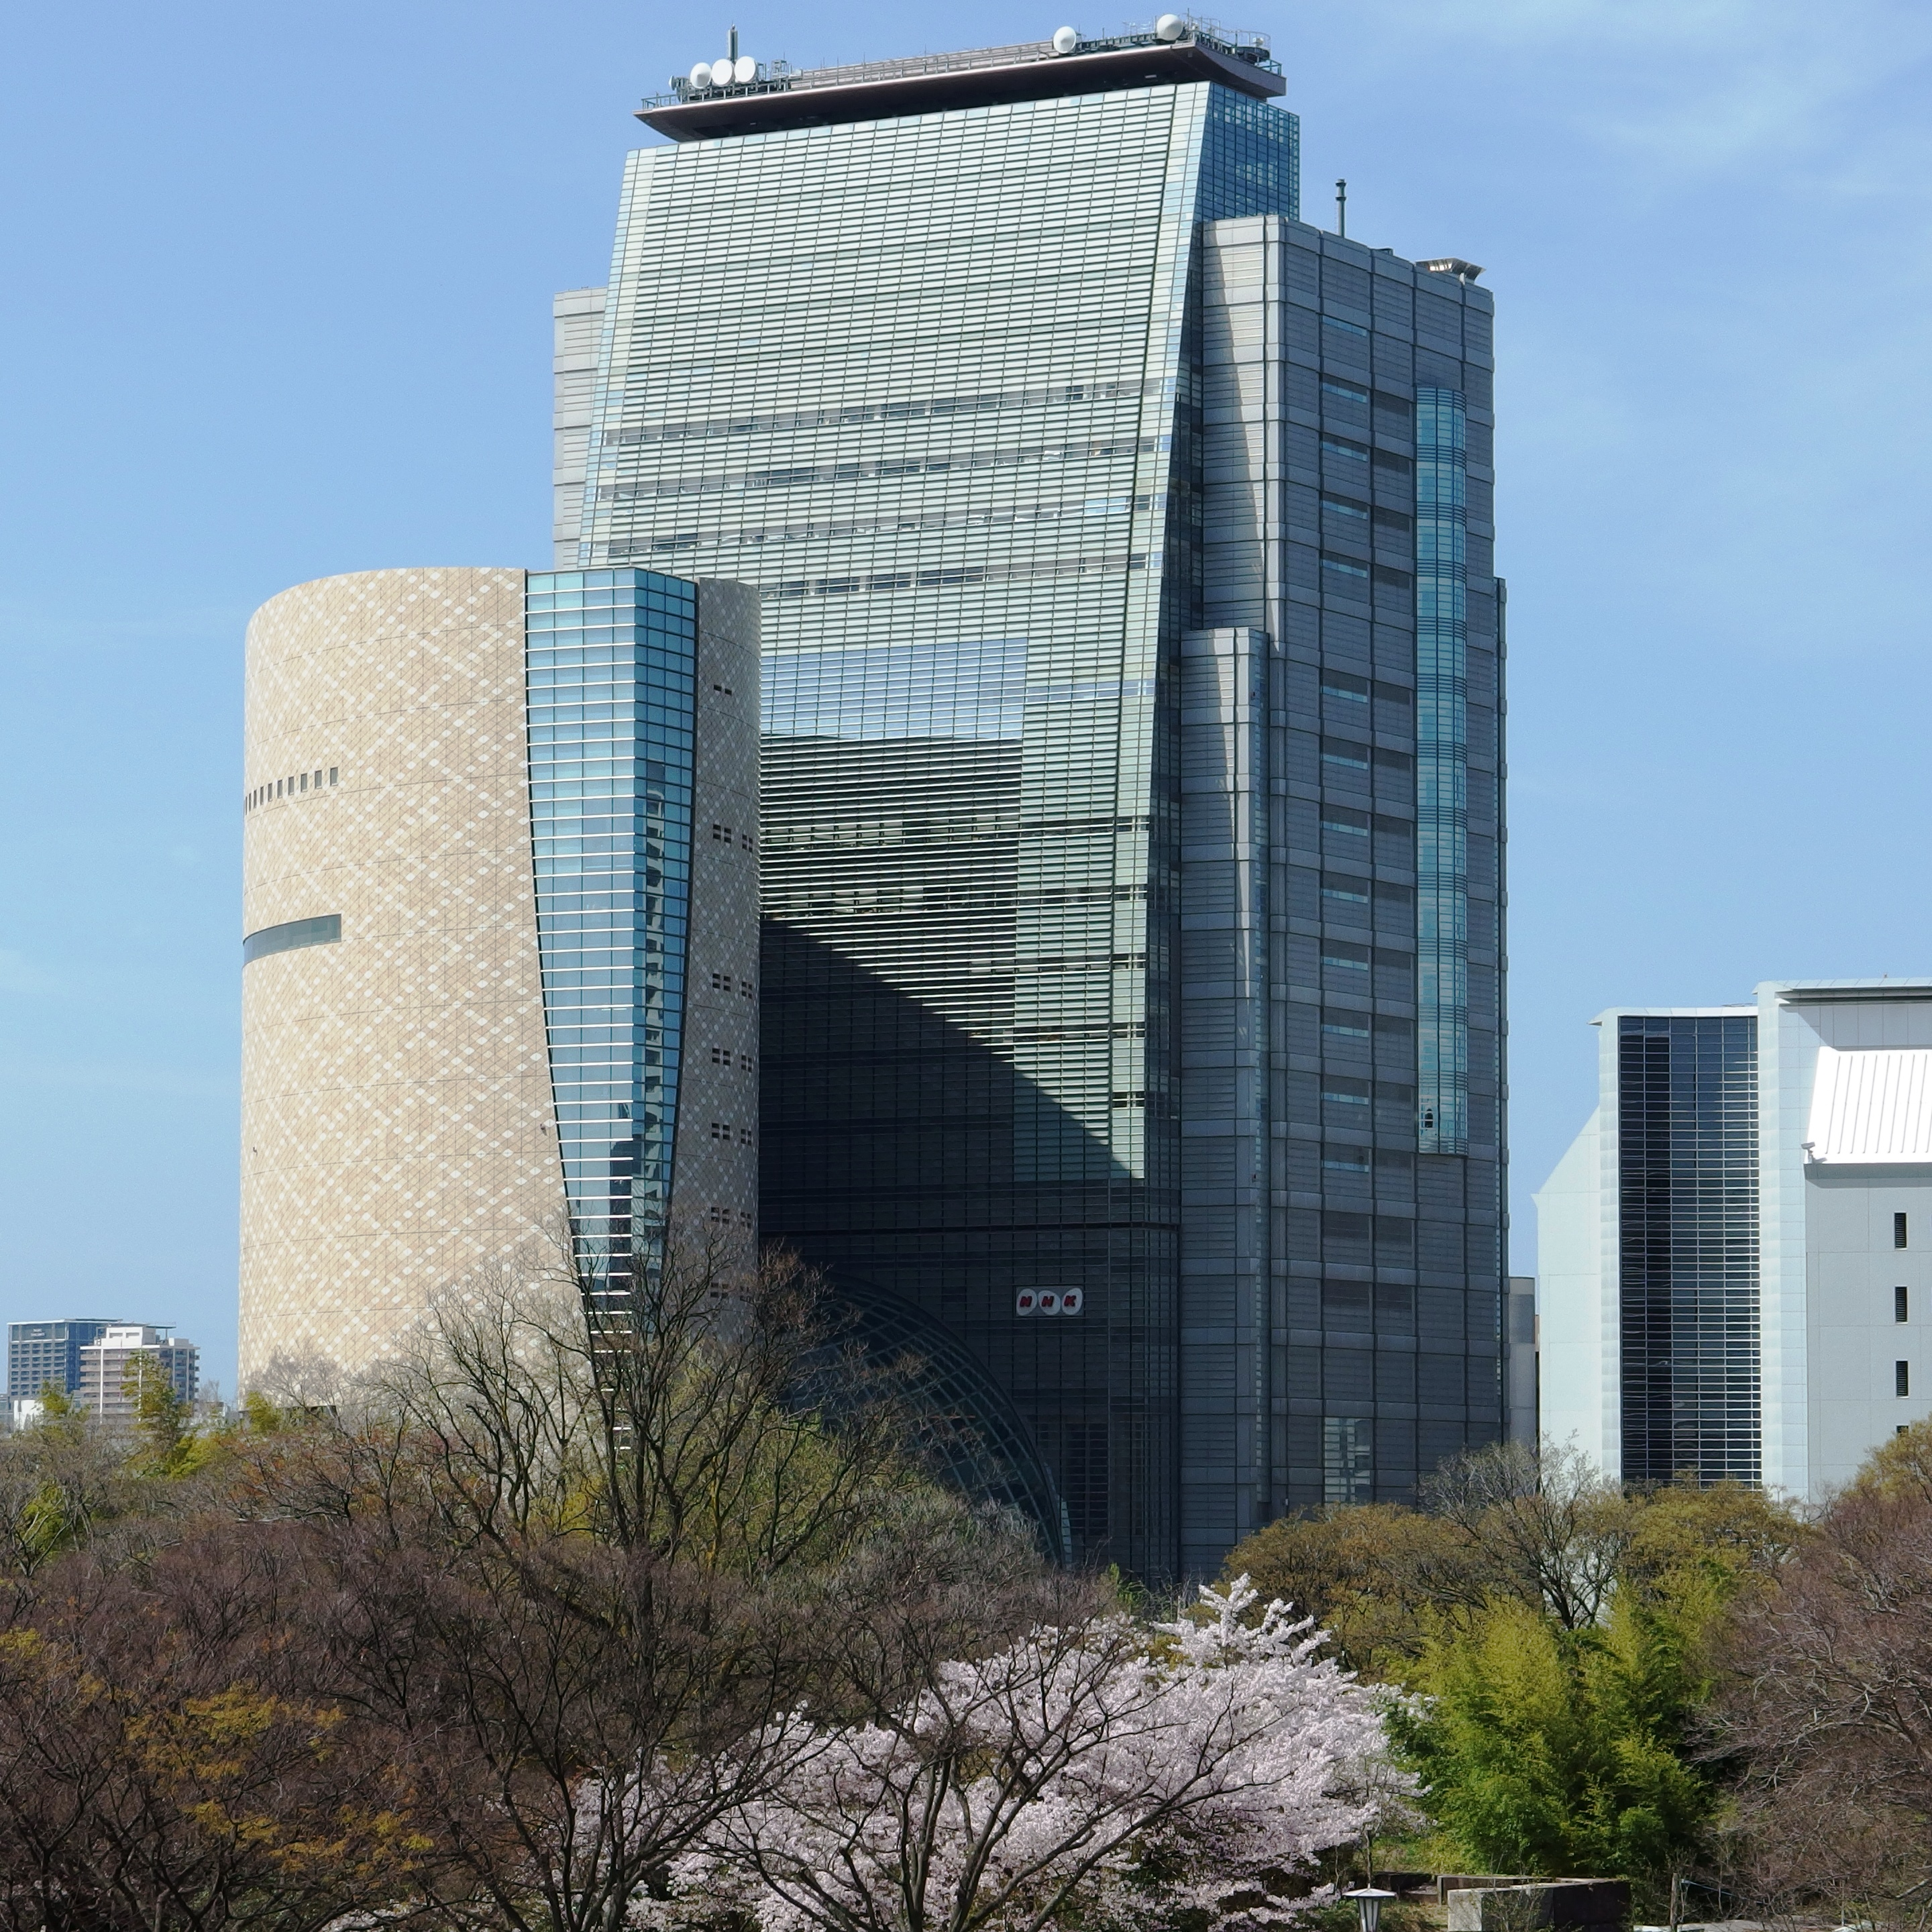 201504: File:NHK Osaka In 201504.JPG